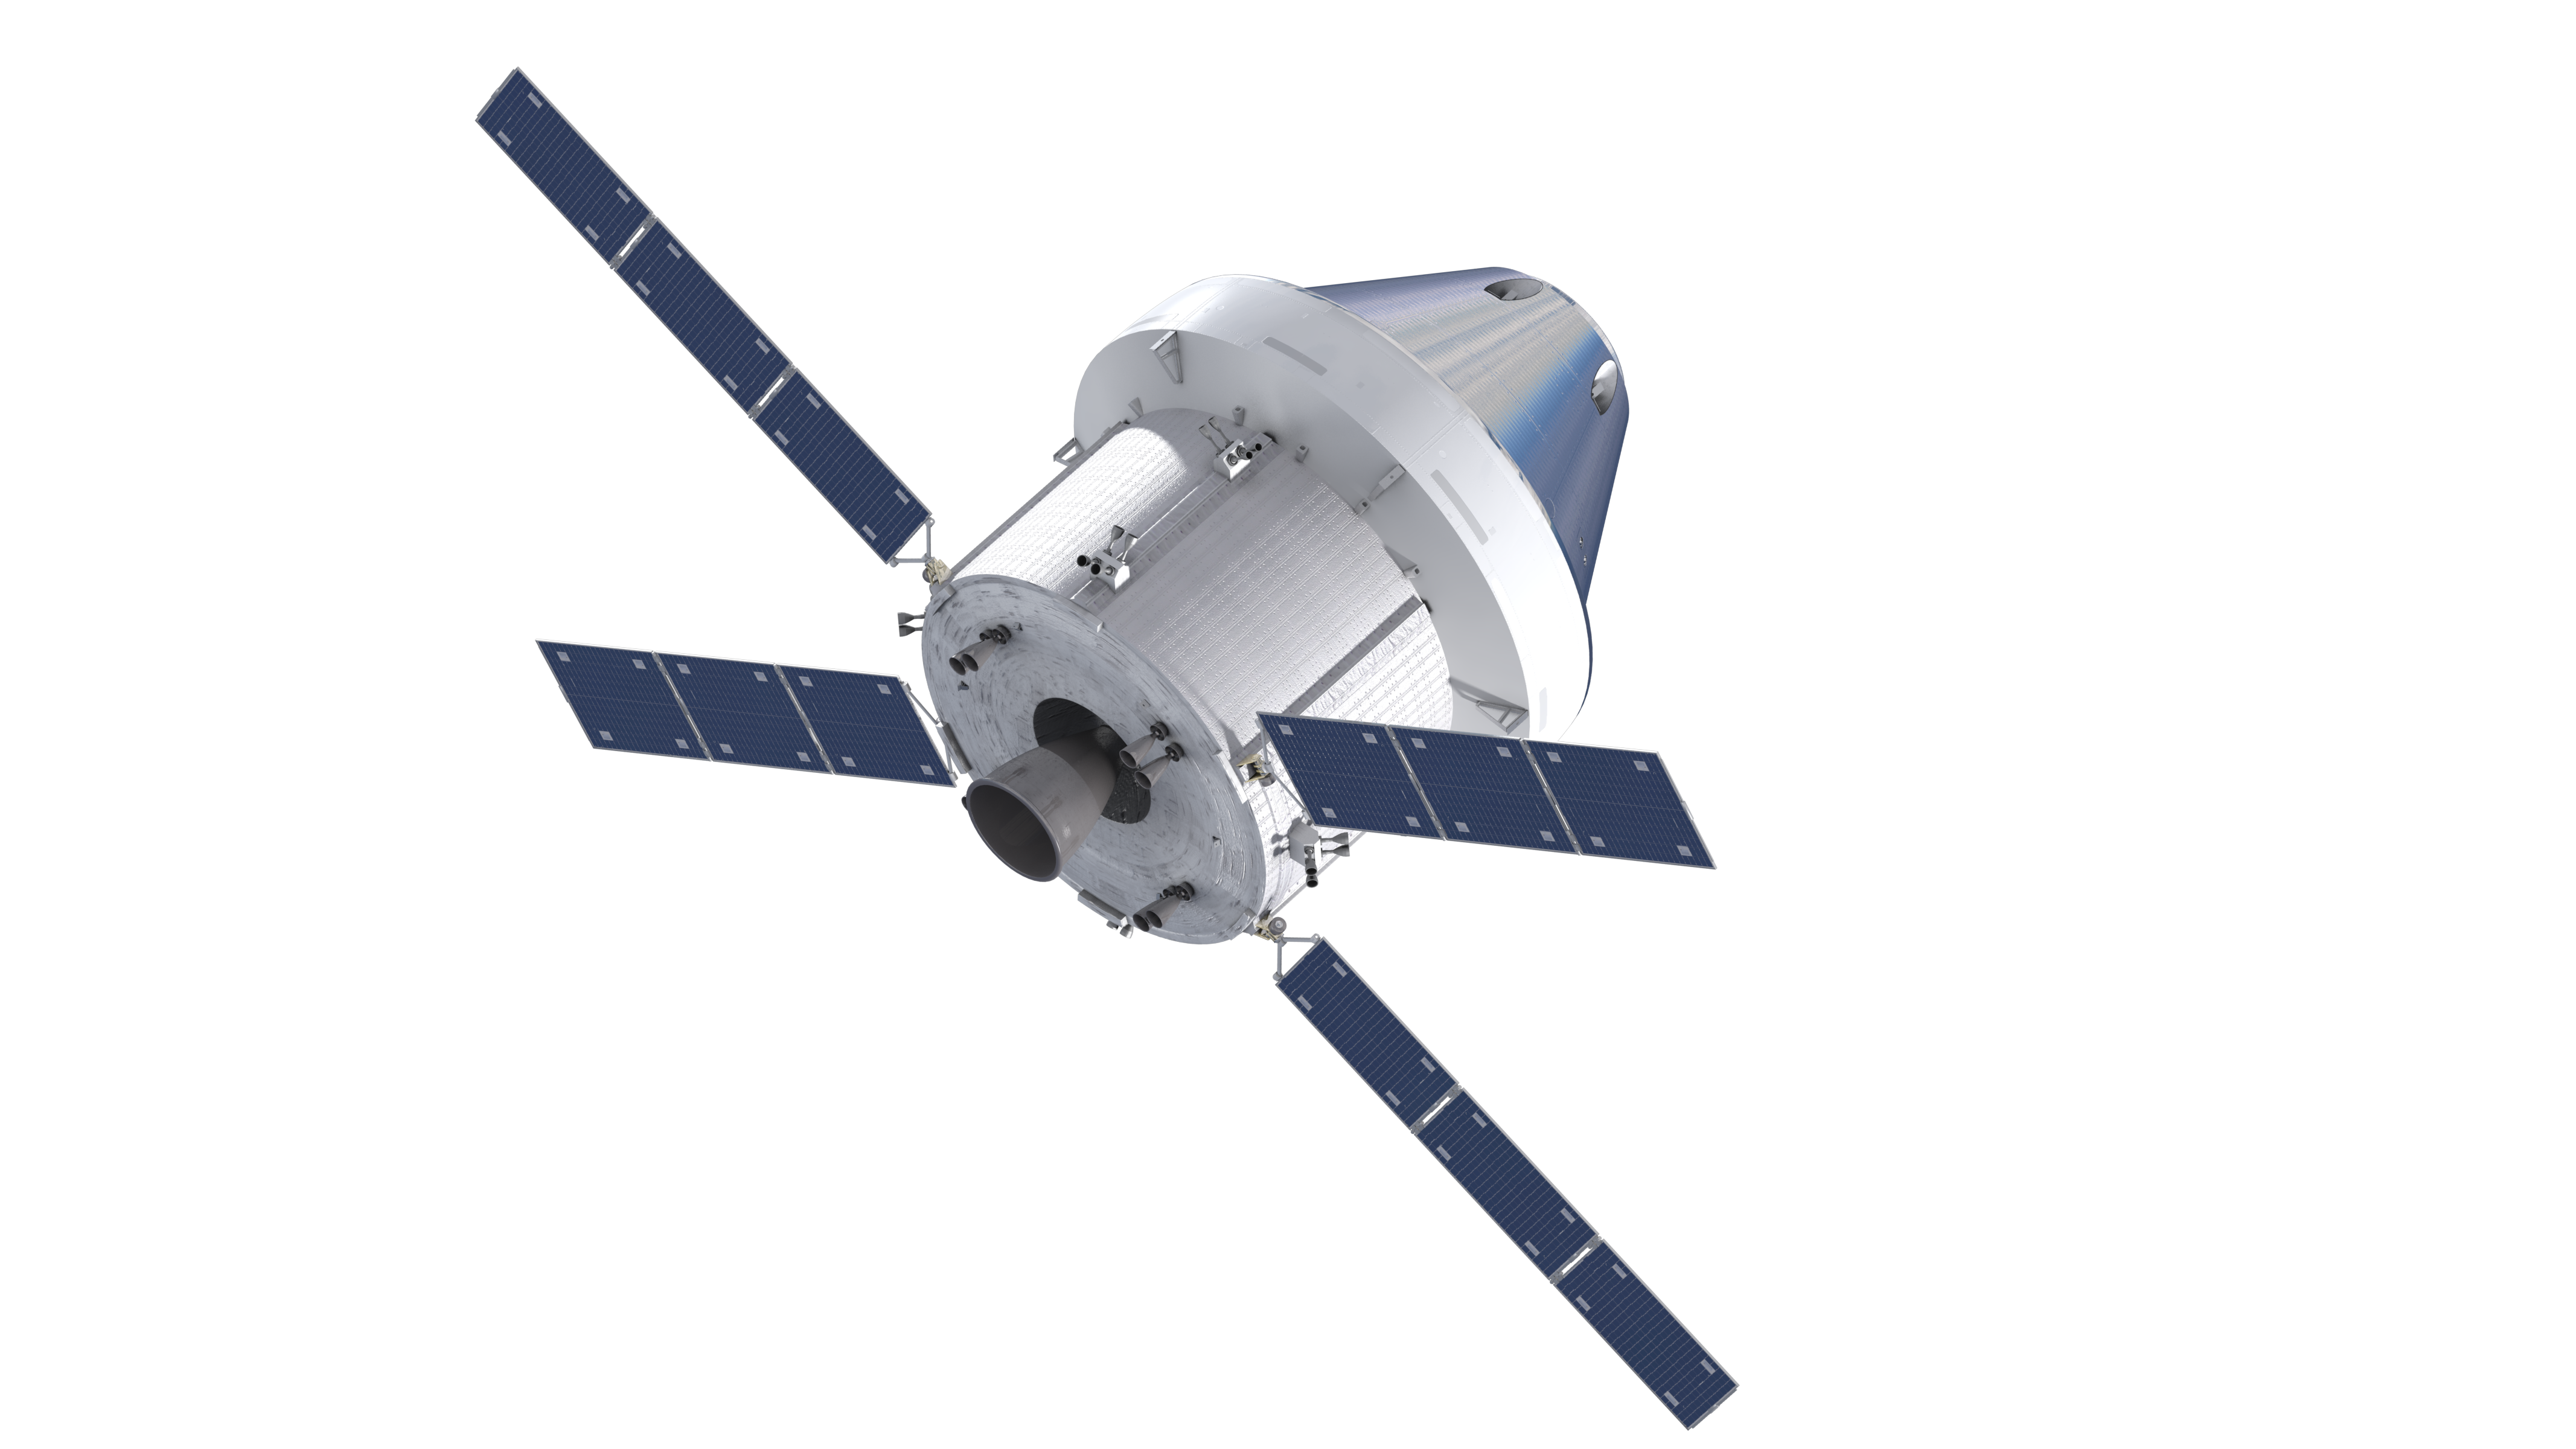 File:Orthographic view of Orion spacecraft, top-back with ...